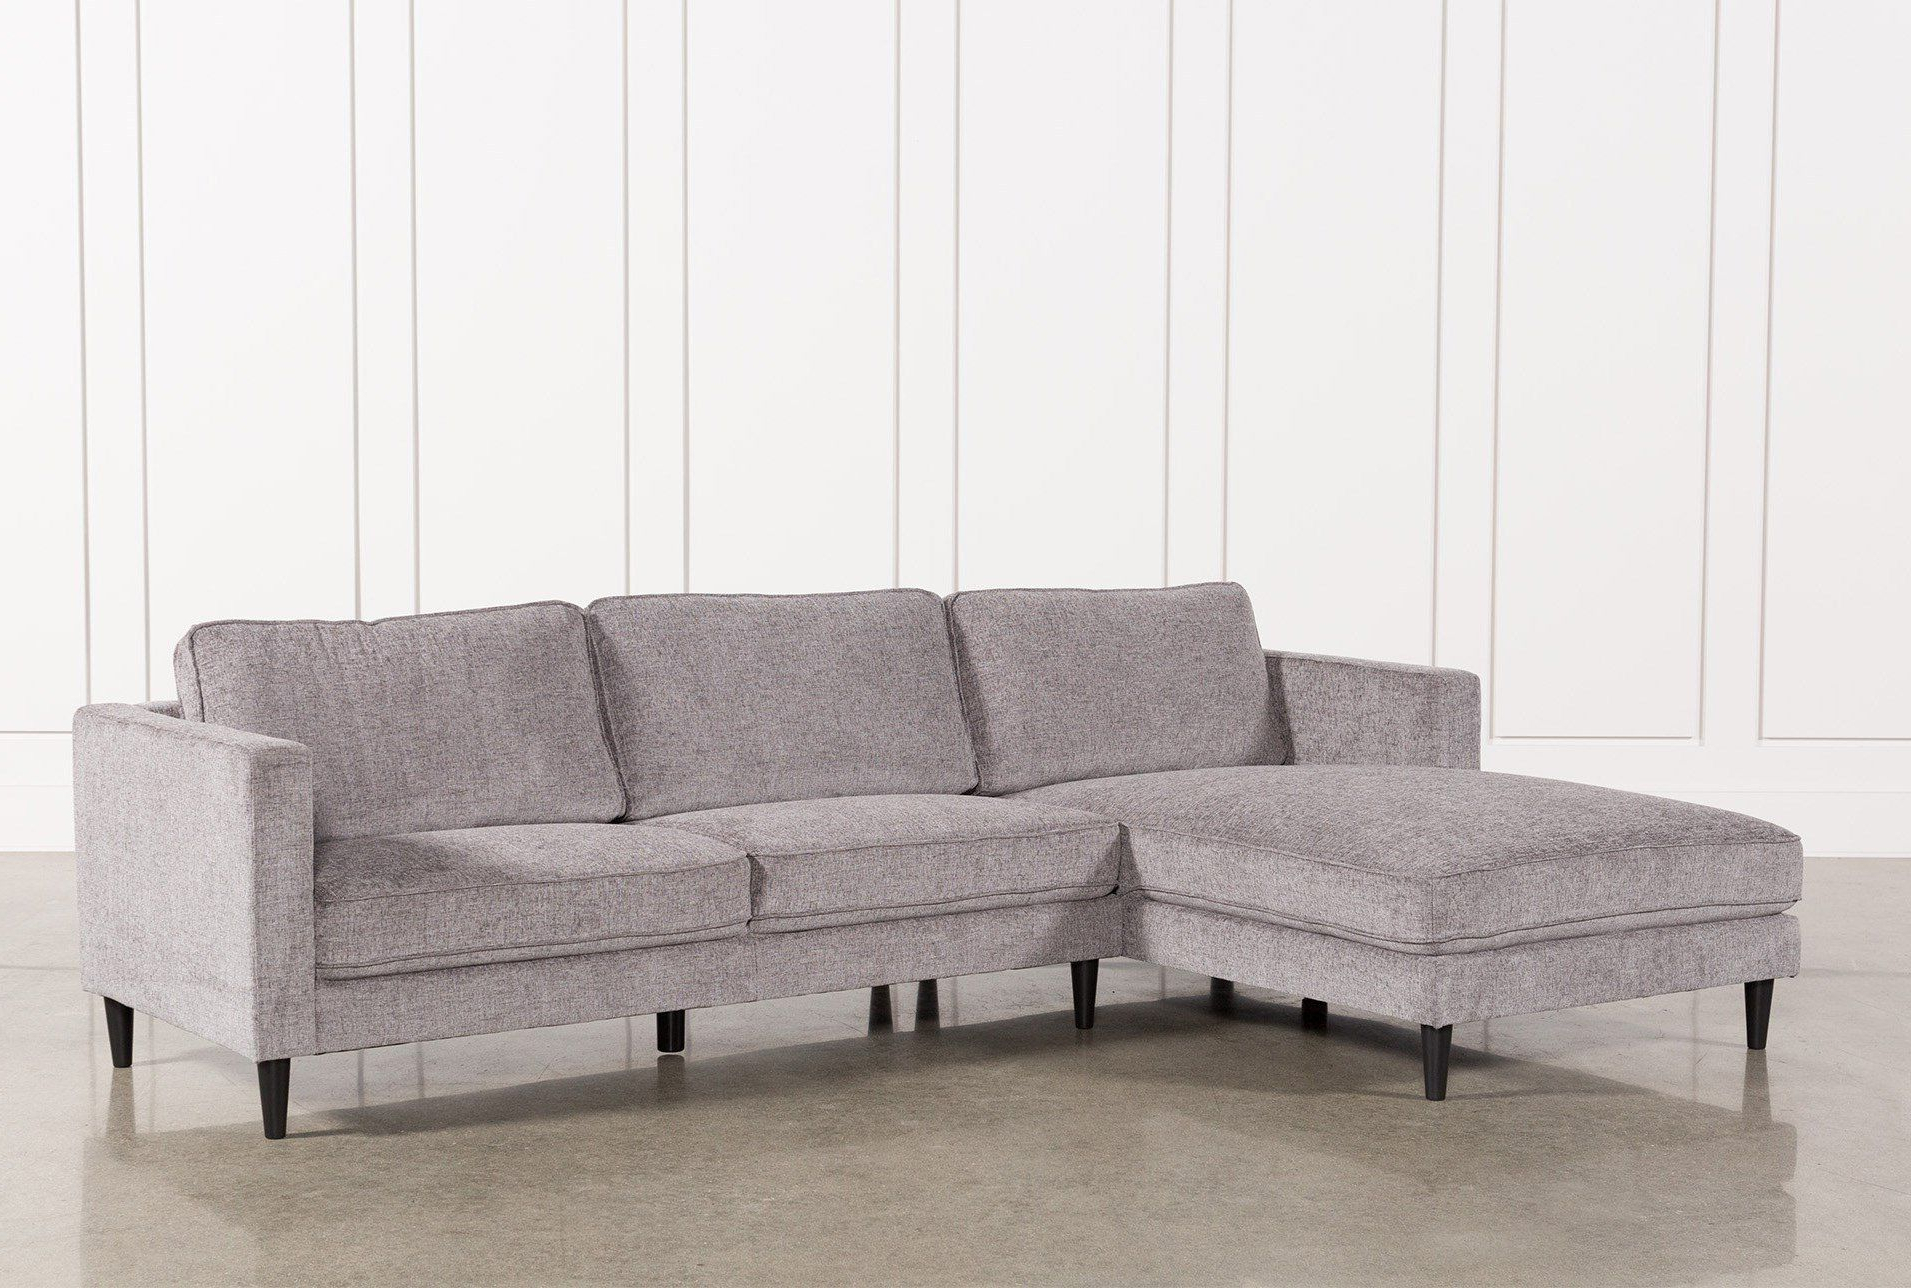 Avery 2 Piece Sectionals With Raf Armless Chaise With Current Cosmos Grey 2 Piece Sectional W/laf Chaise (View 3 of 20)